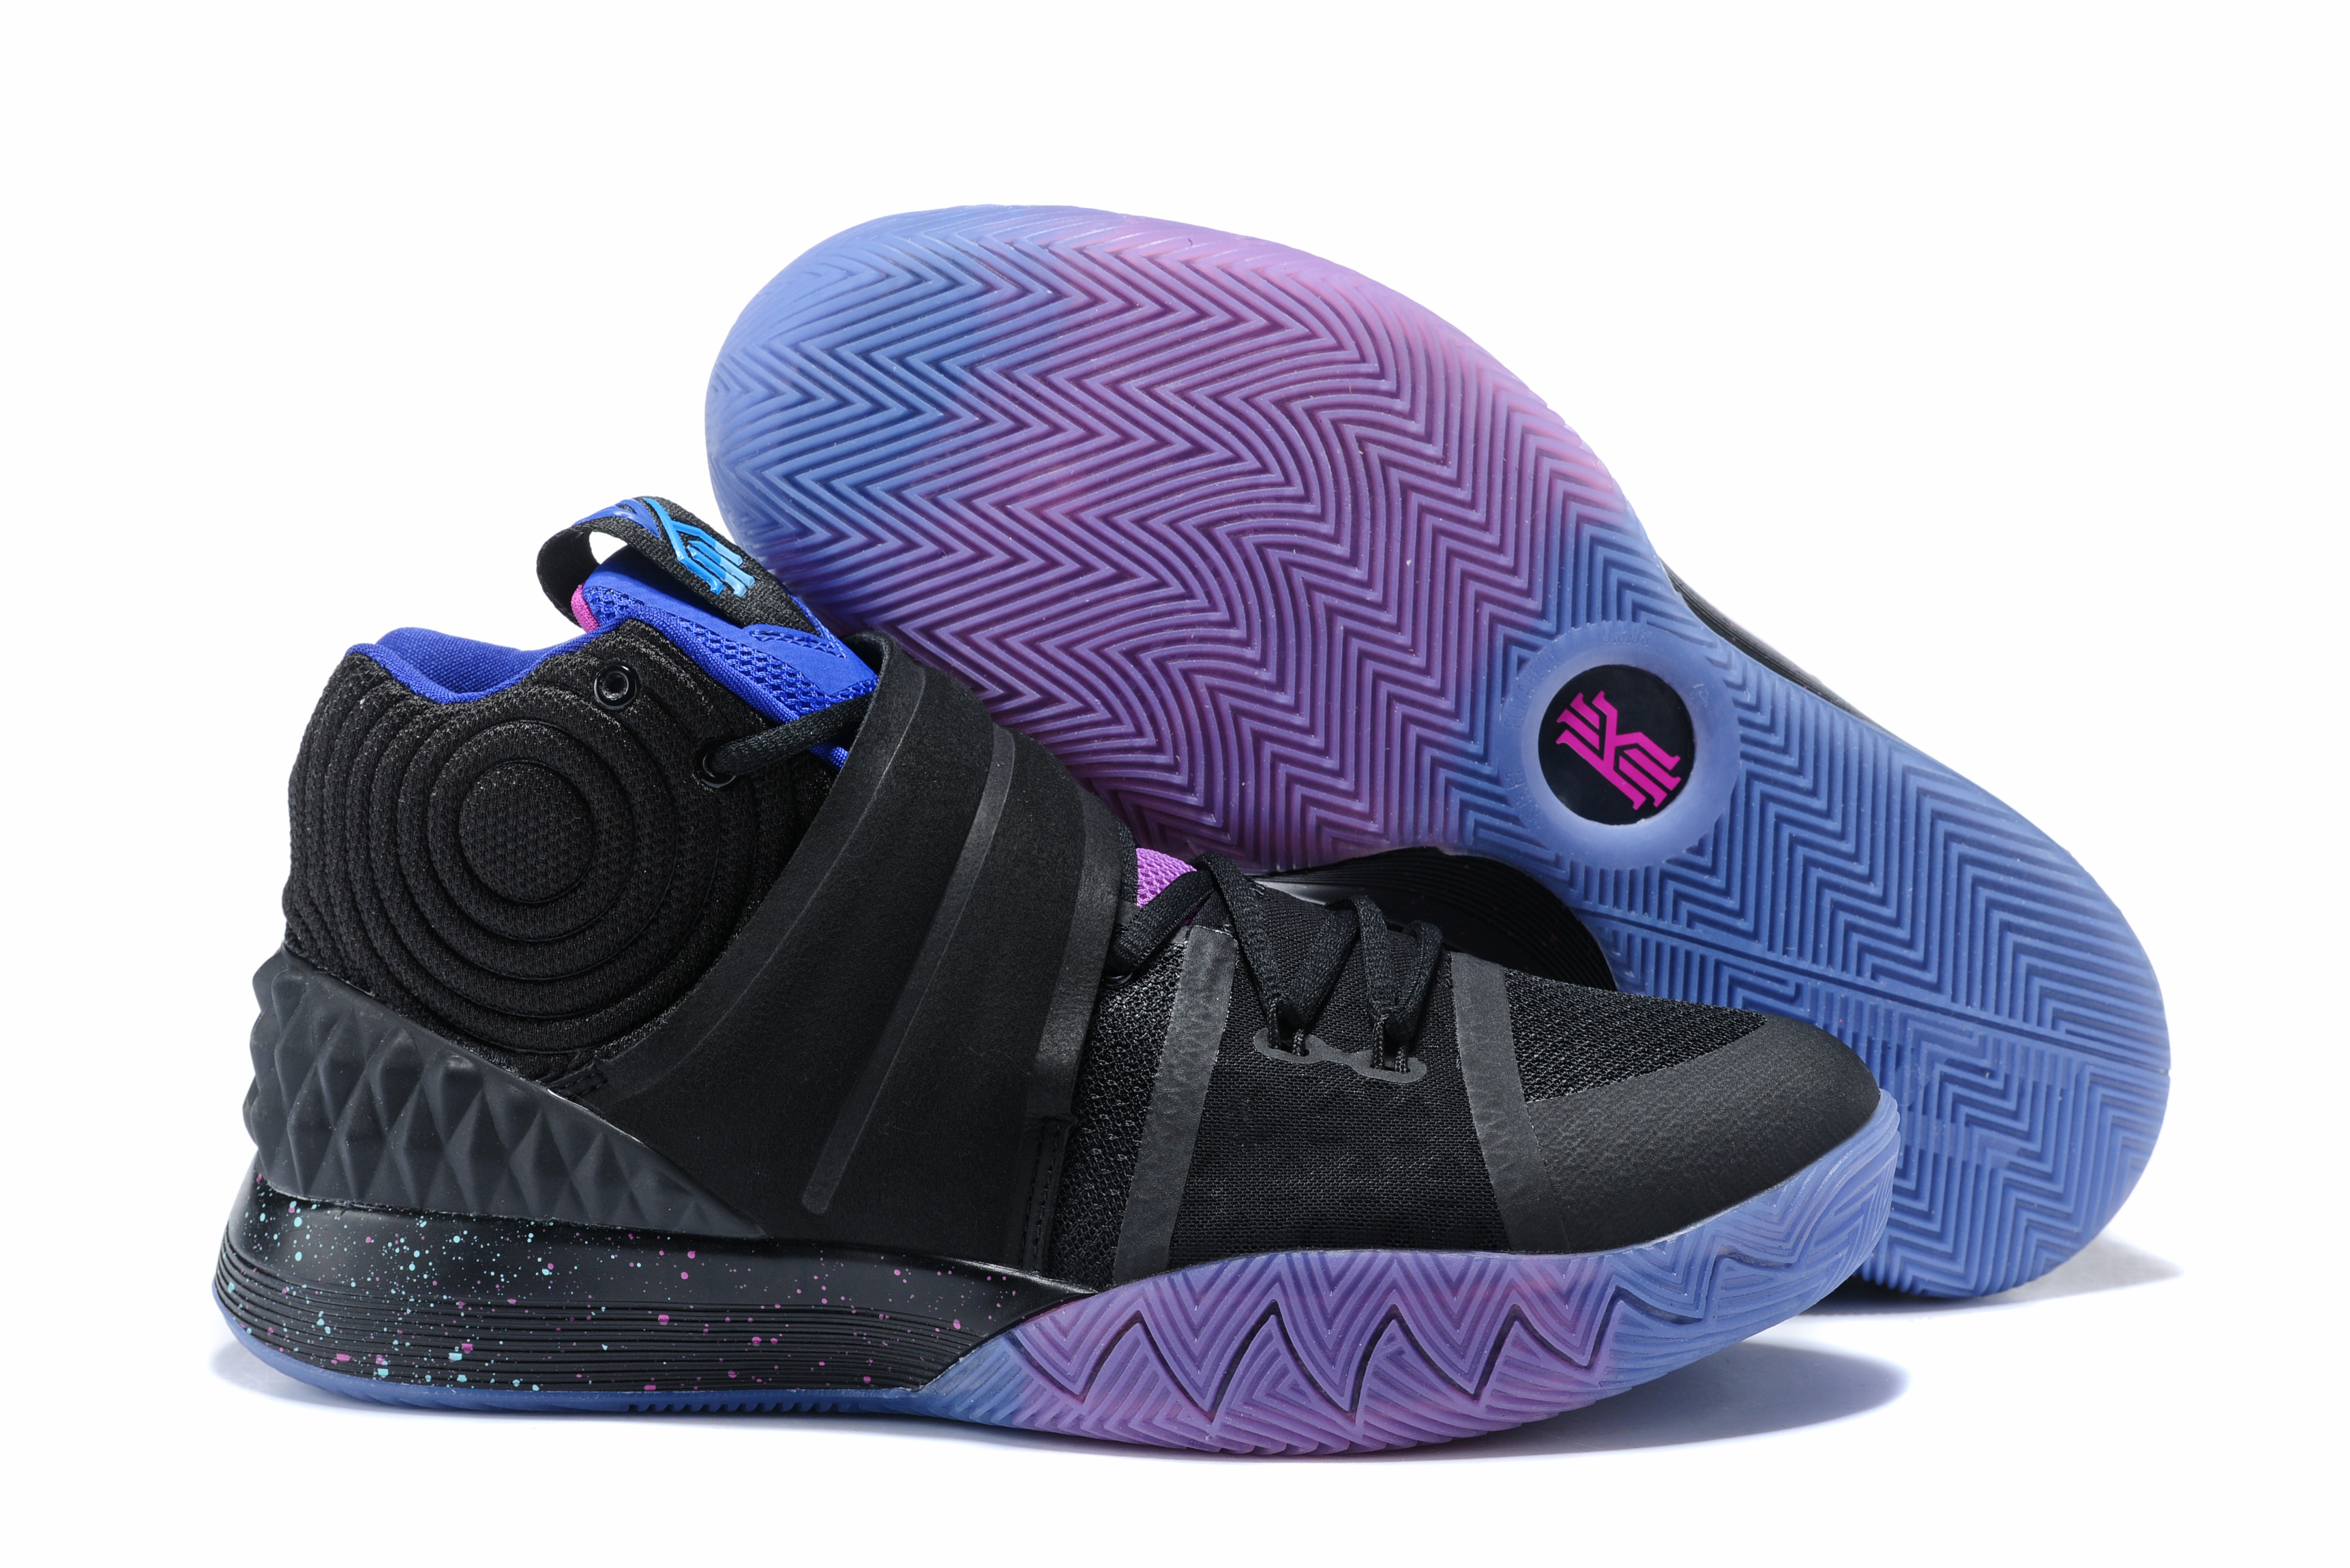 Nike Kyrie S1HYBRID Black Purple Shoes